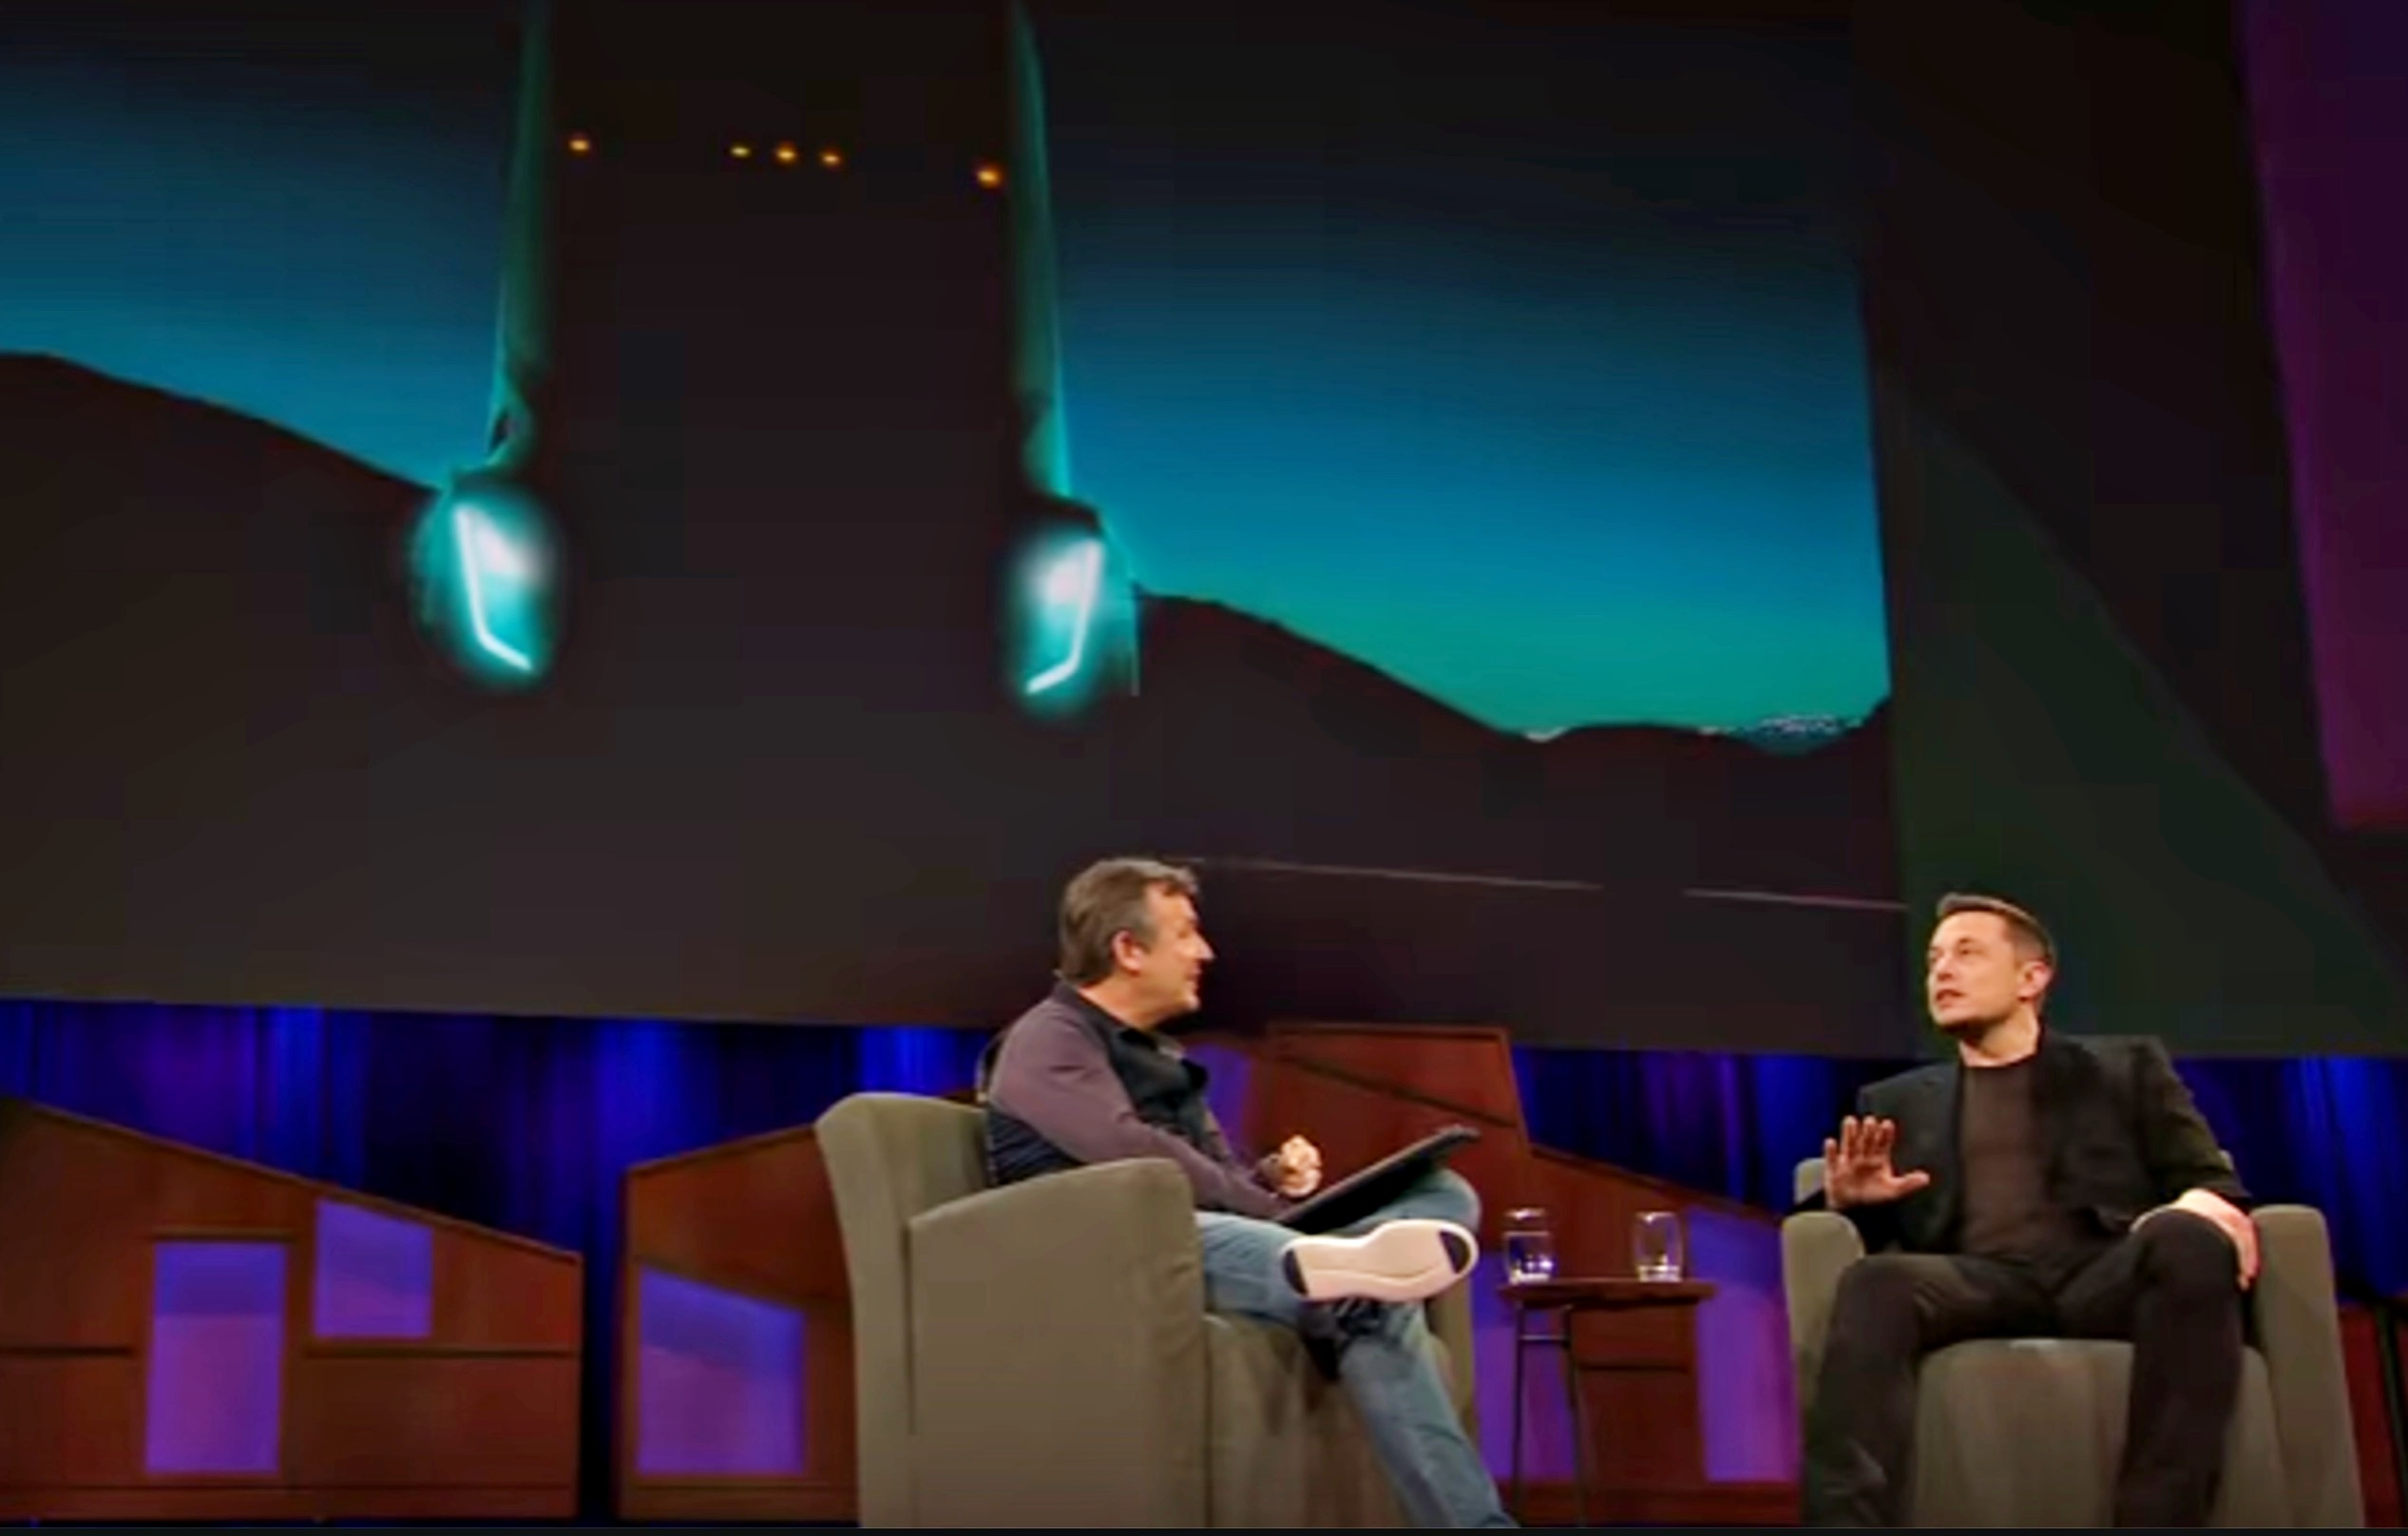 Elon-Musk-TED-Talk-Semi